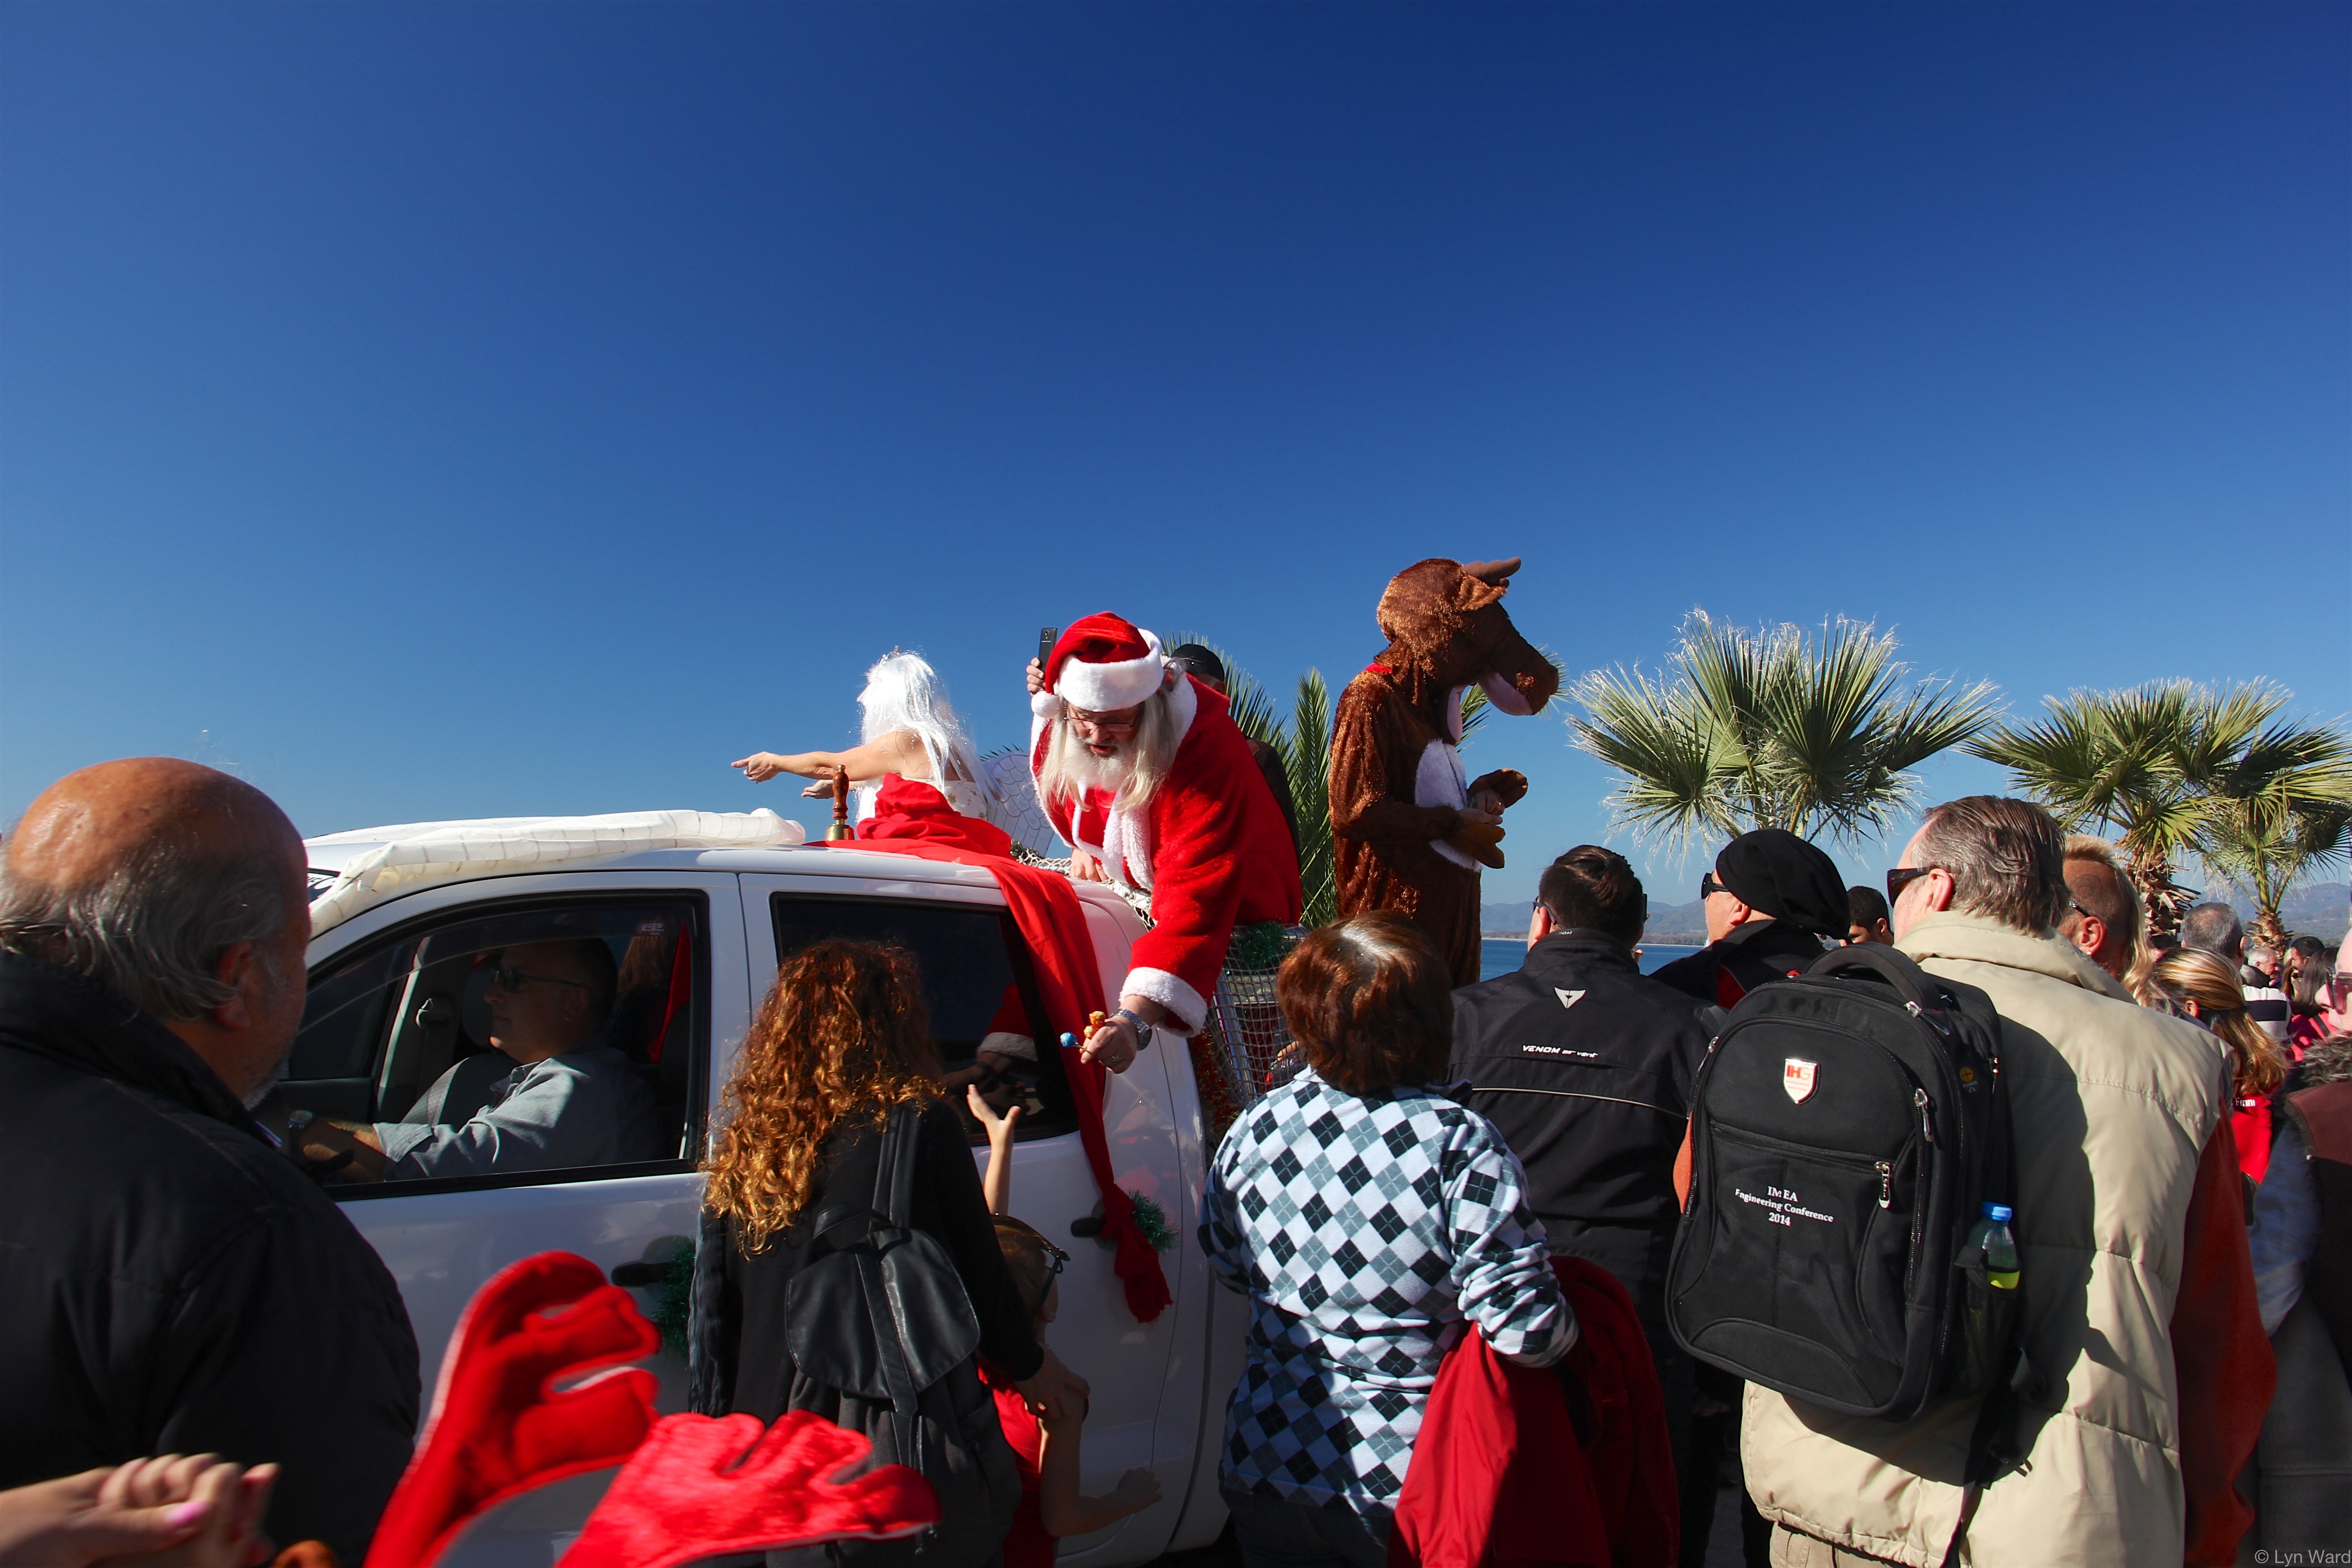 Santa handing out lollipops as he made his way to his Grotto